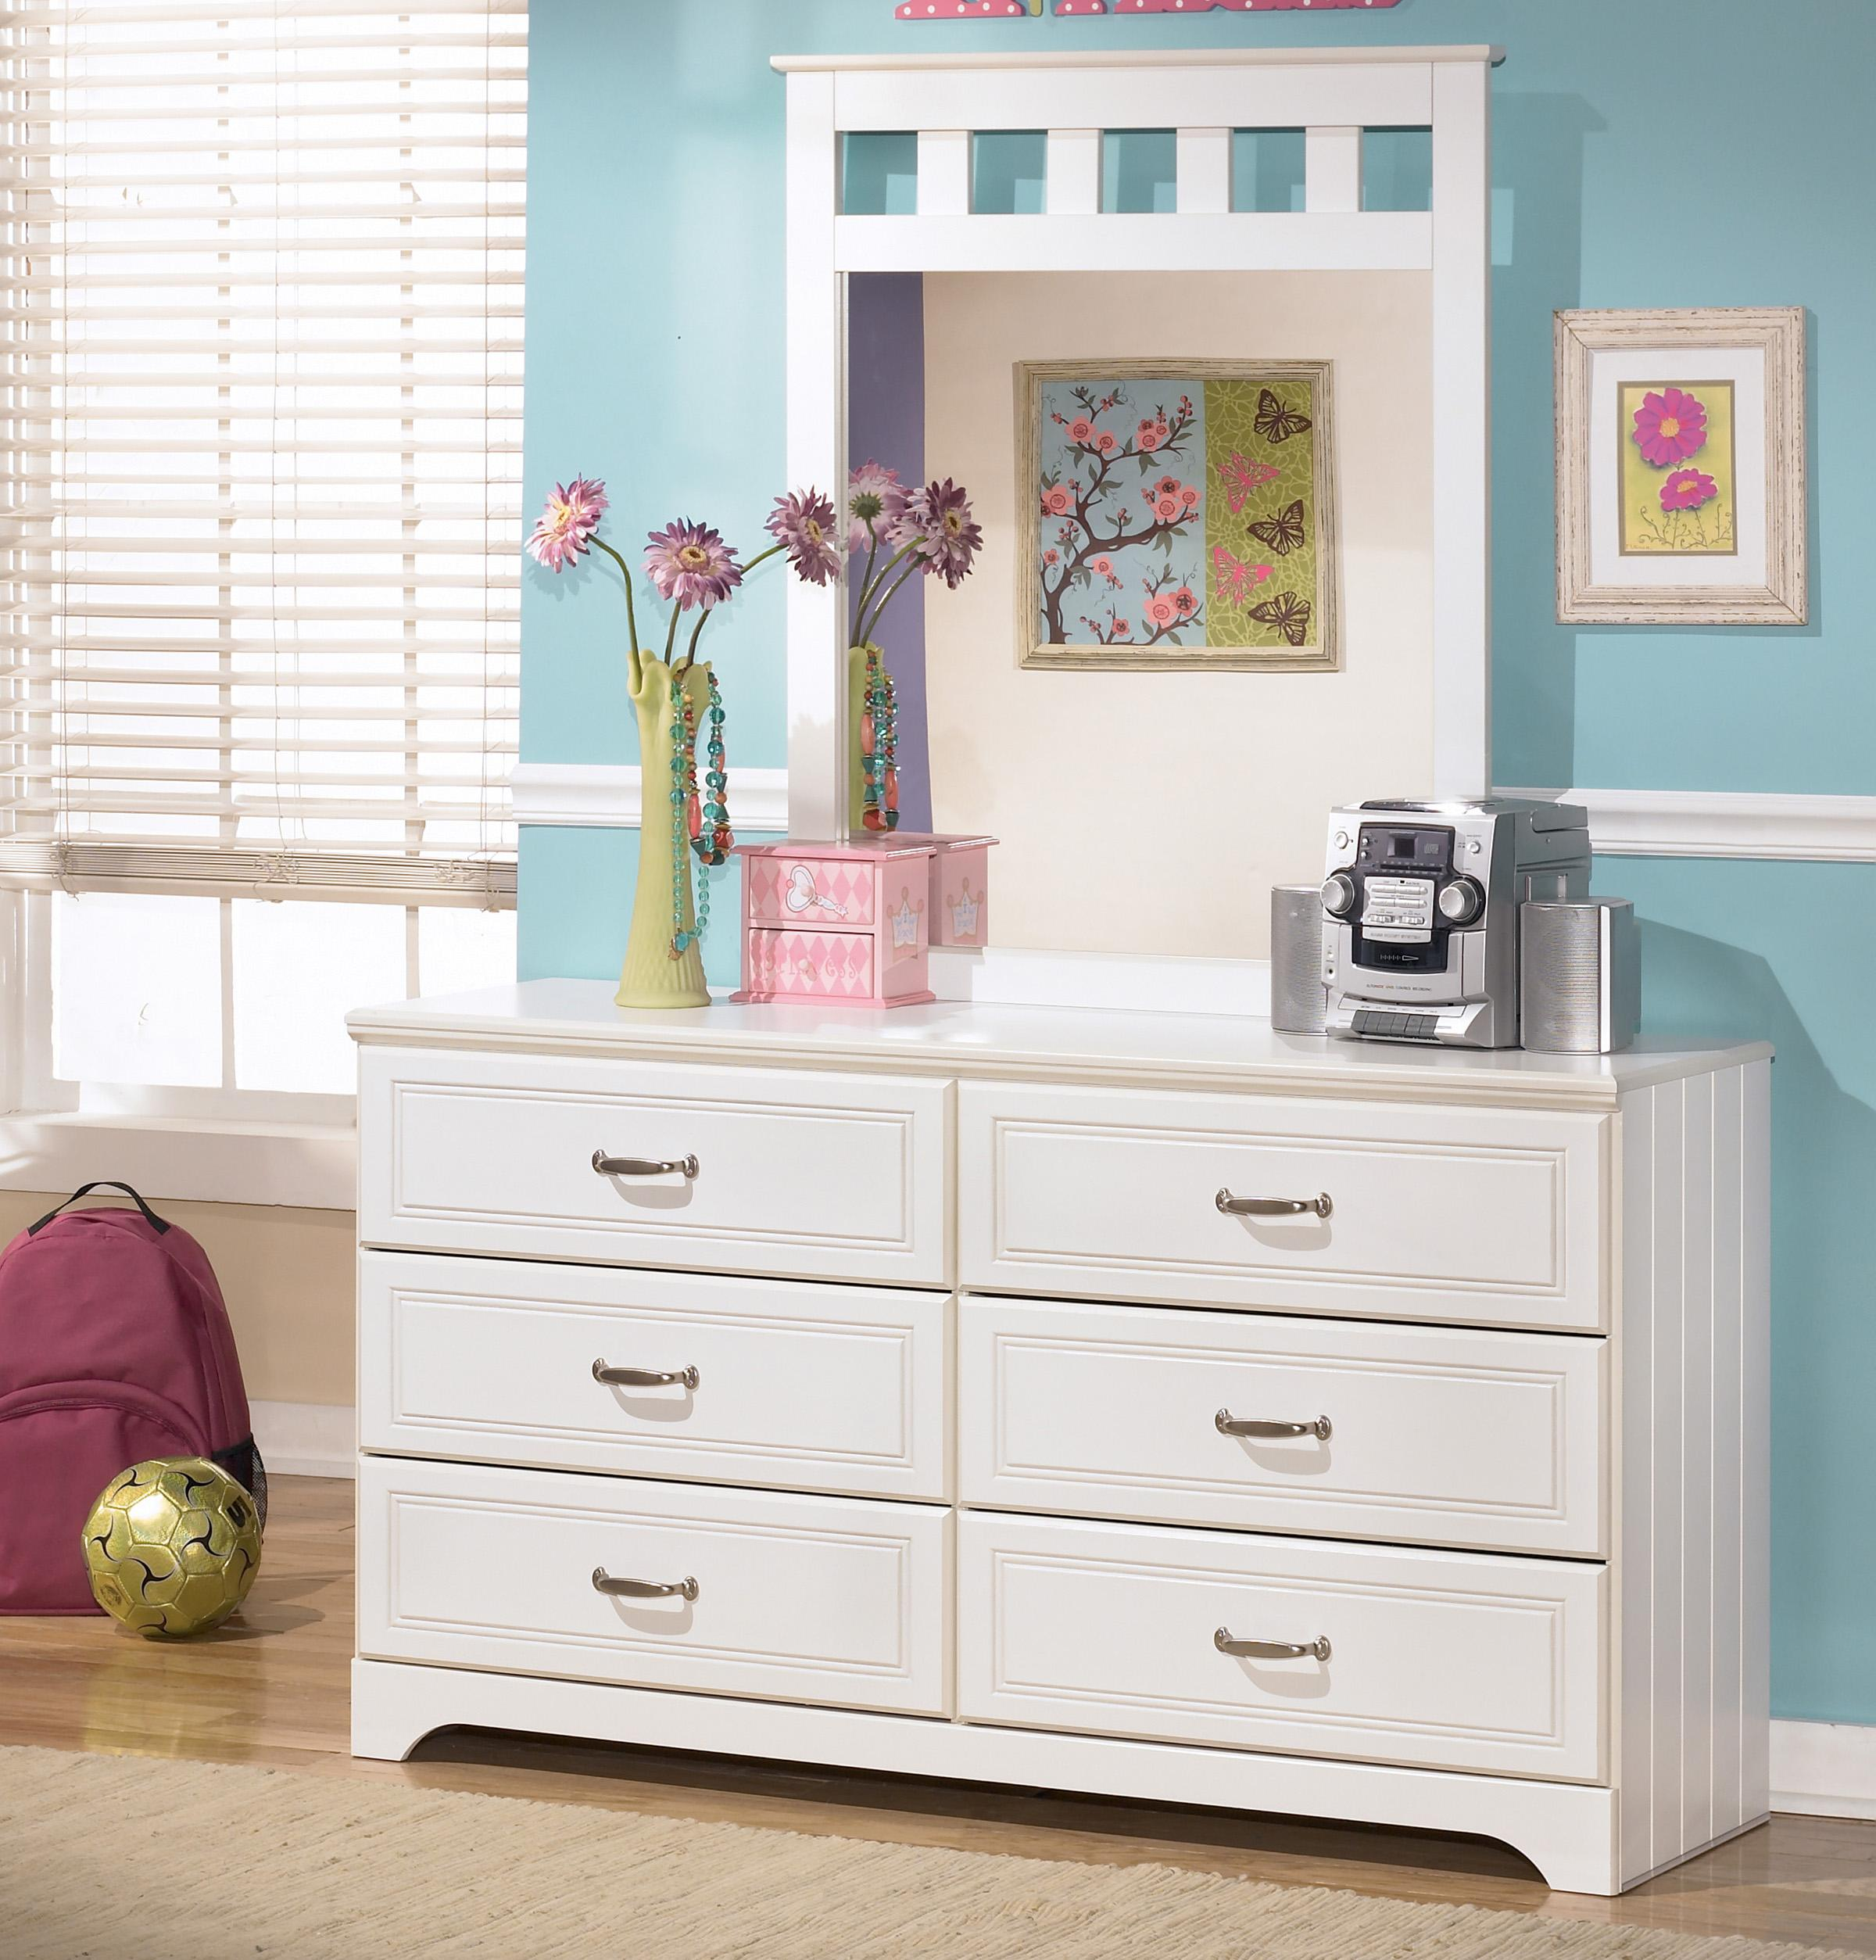 Signature Design by Ashley Lulu Dresser and Mirror Combo - Item Number: B102-21+26